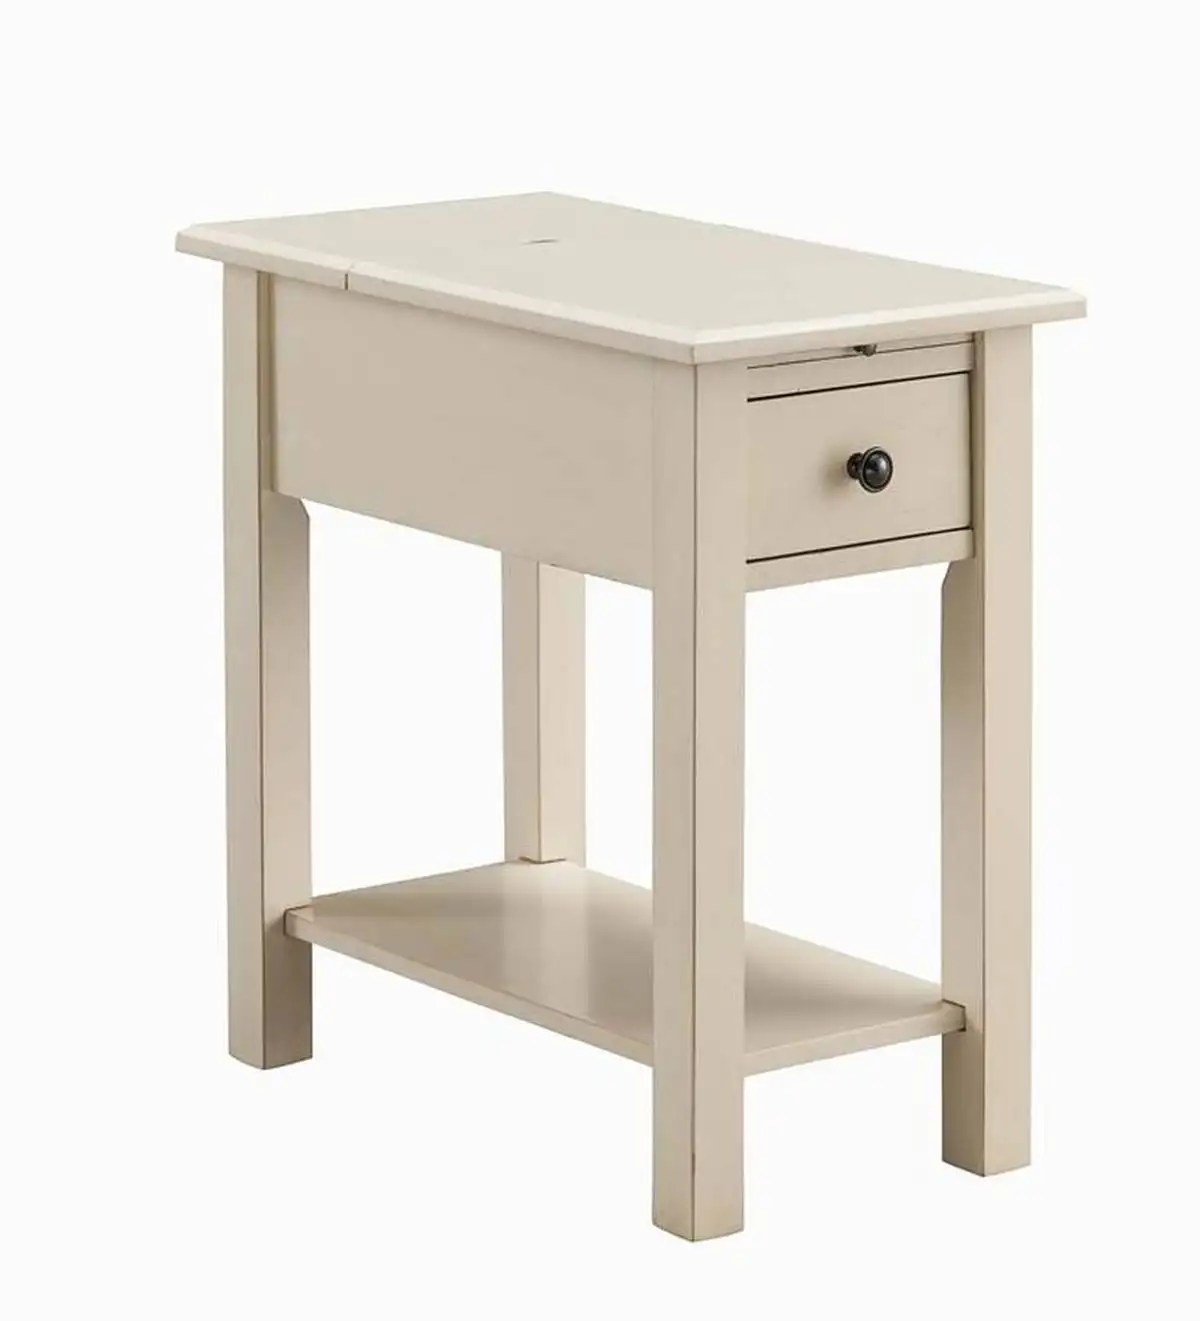 Benton Side Table With Charging Station Black Plowhearth